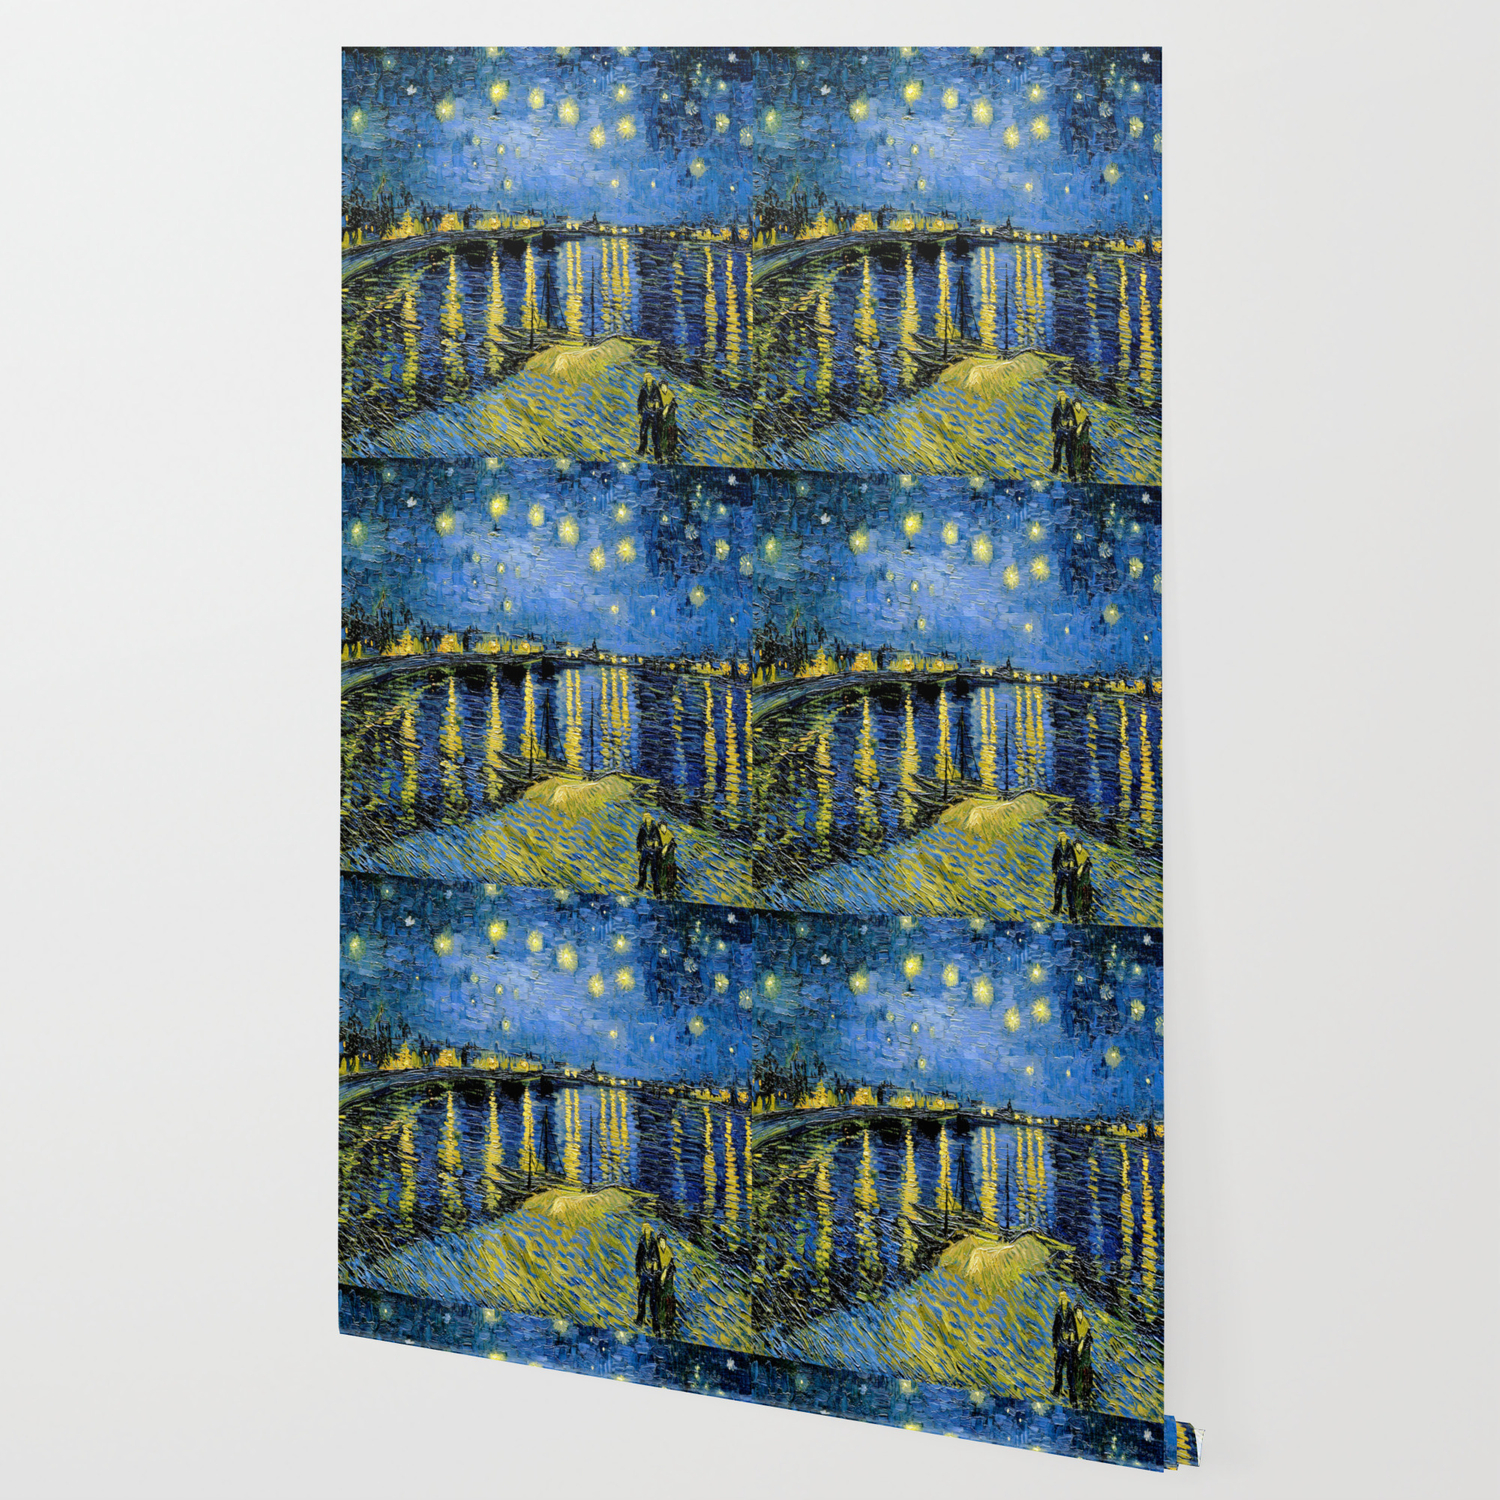 Vincent Van Gogh Starry Night Over The Rhone Wallpaper By Jjbzz